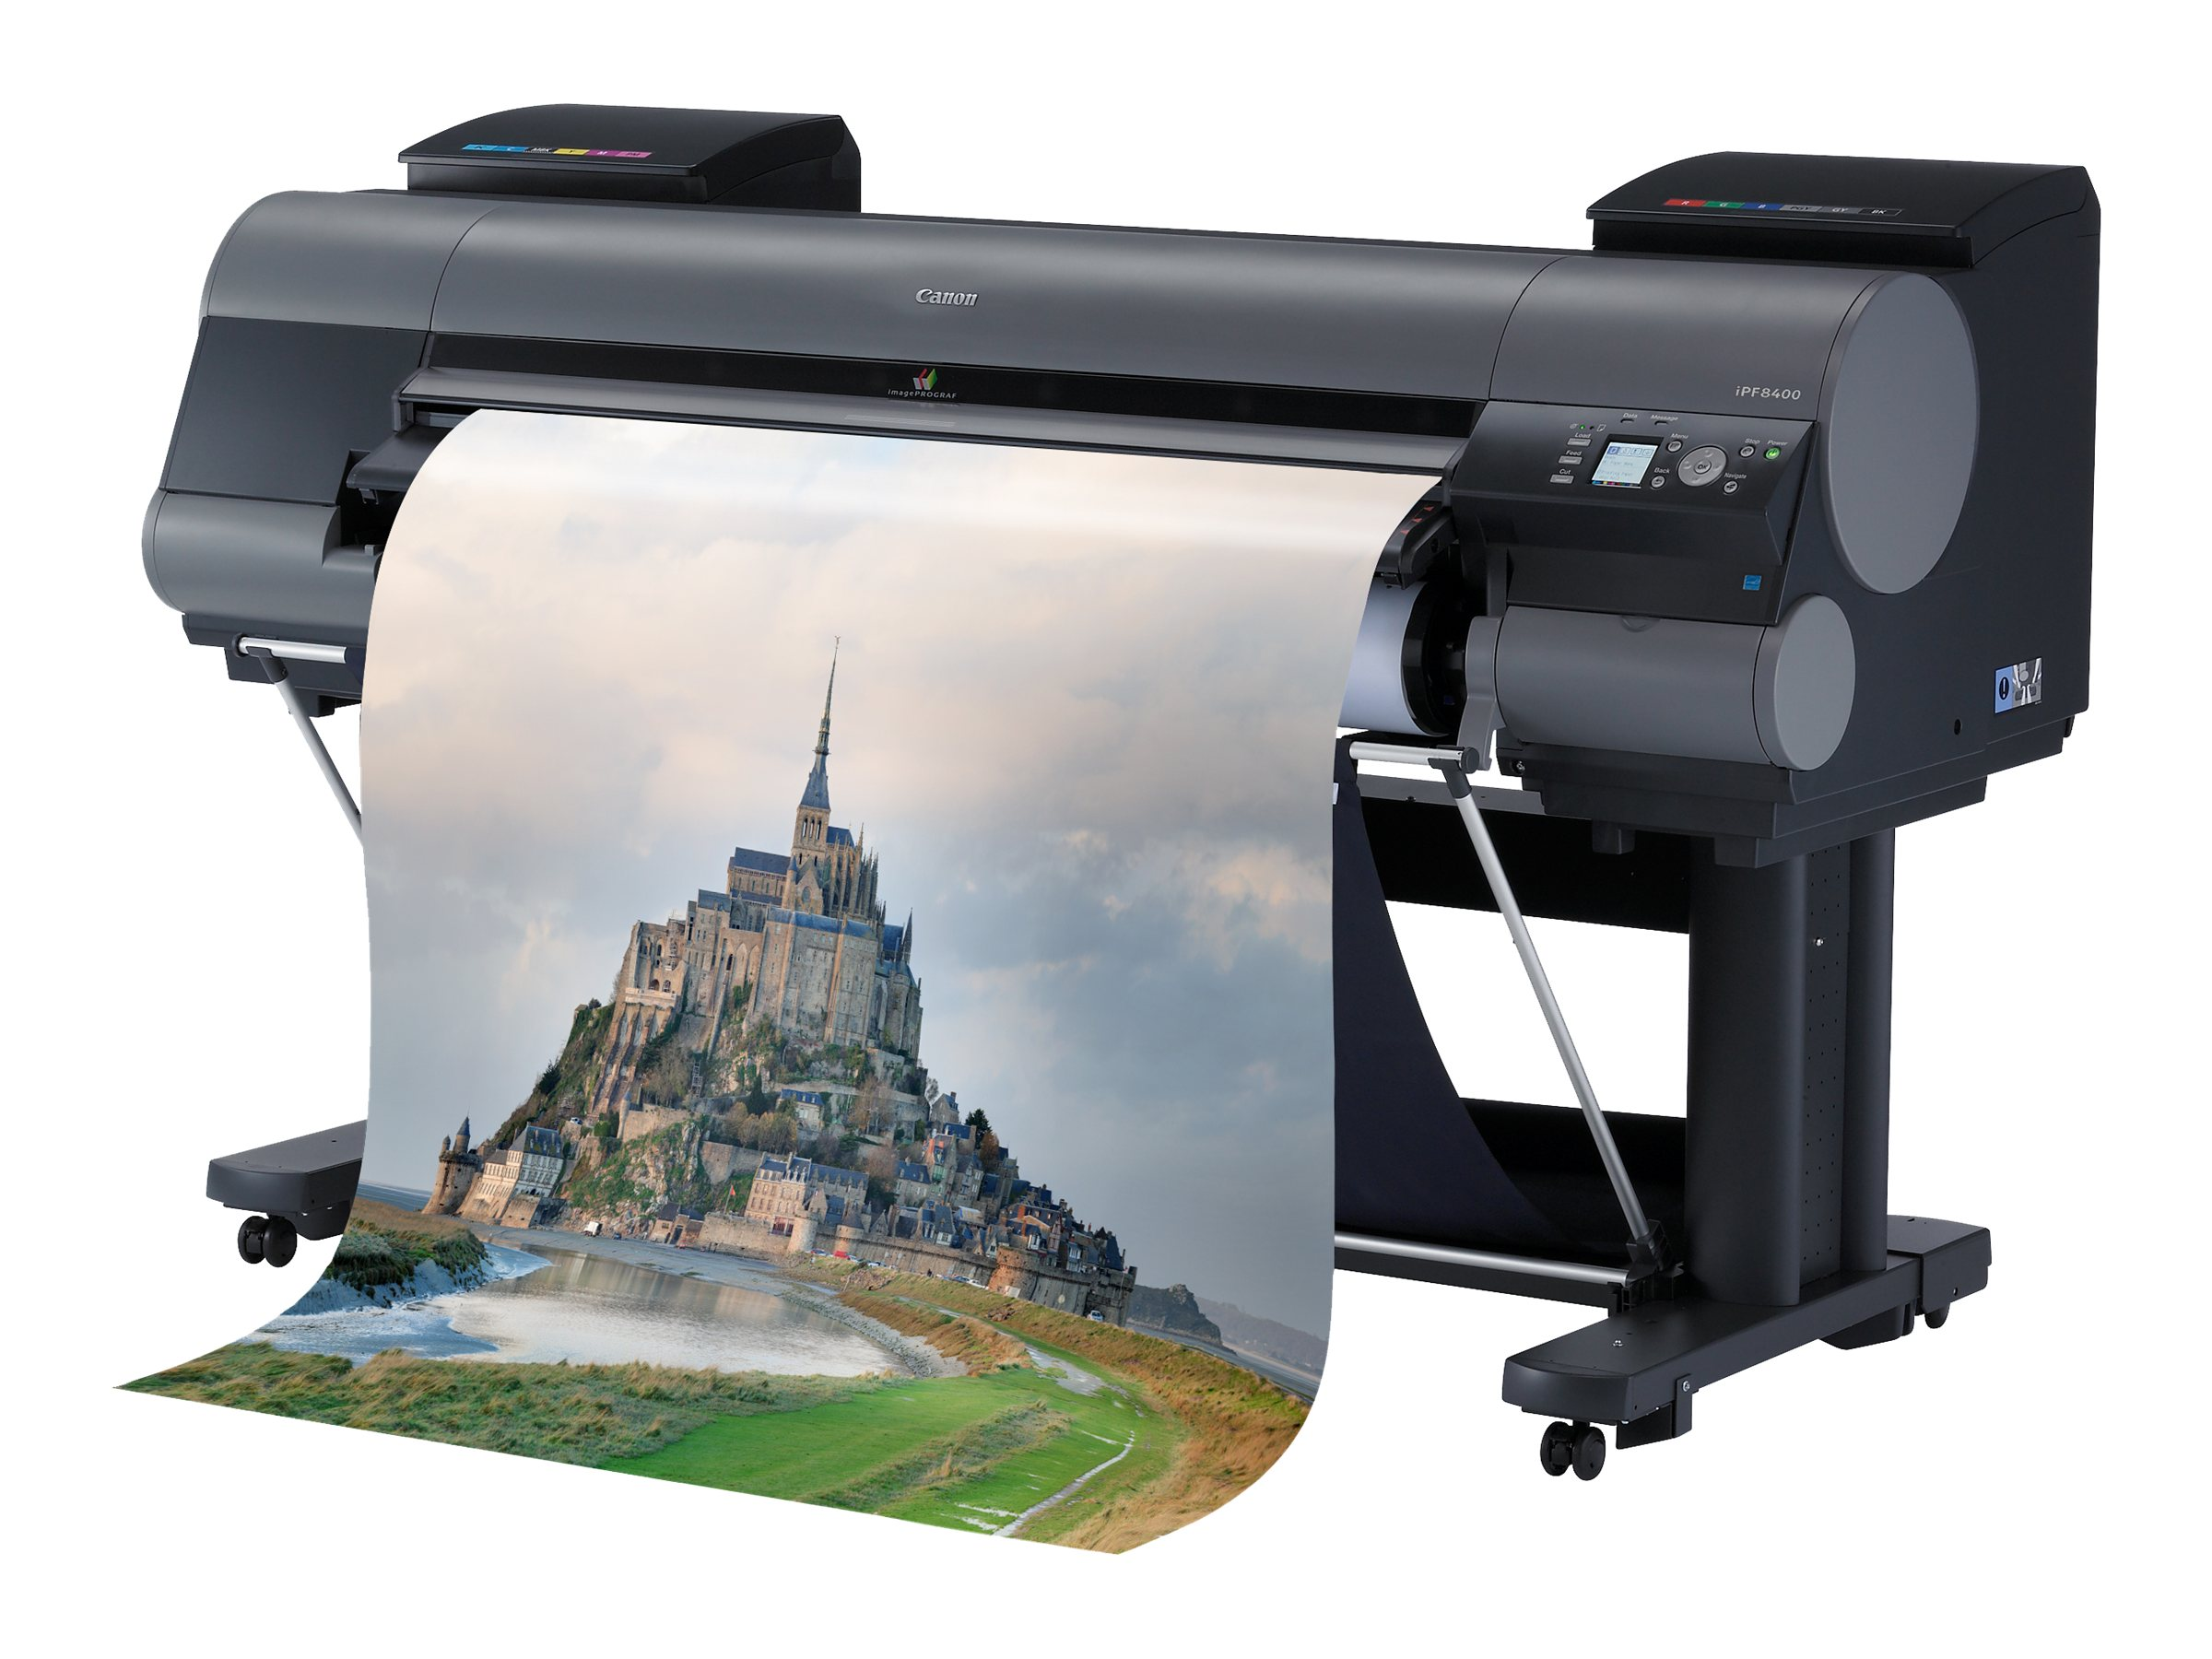 Canon imagePROGRAF iPF8400 Graphic Arts & Photo Printer, 6565B002